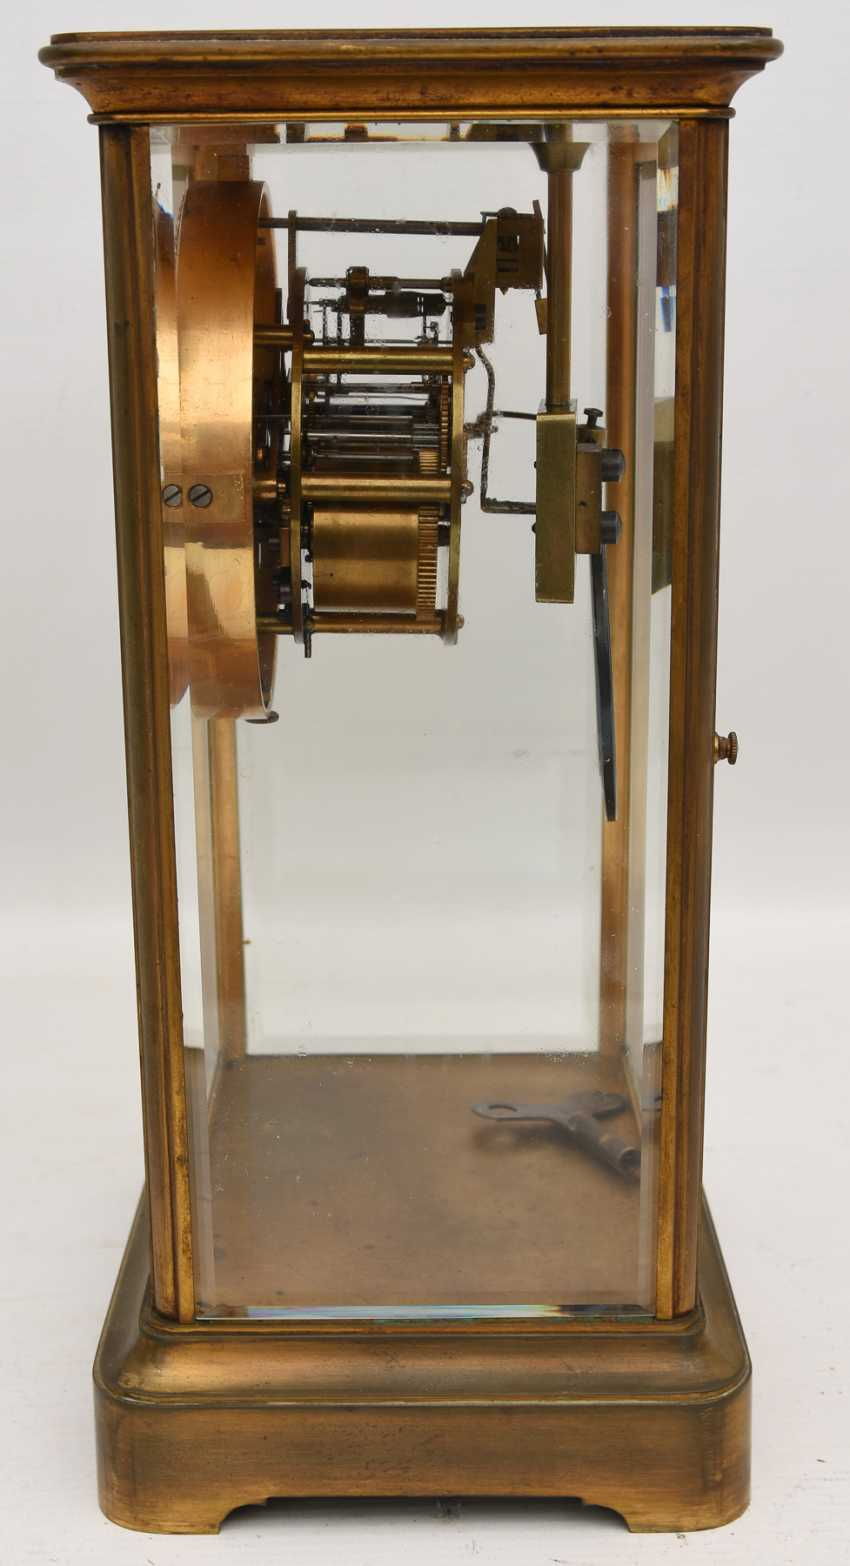 JAPY FRÈRES: pendulum CLOCK, brass/glass, France at the end of 18. Century - photo 7